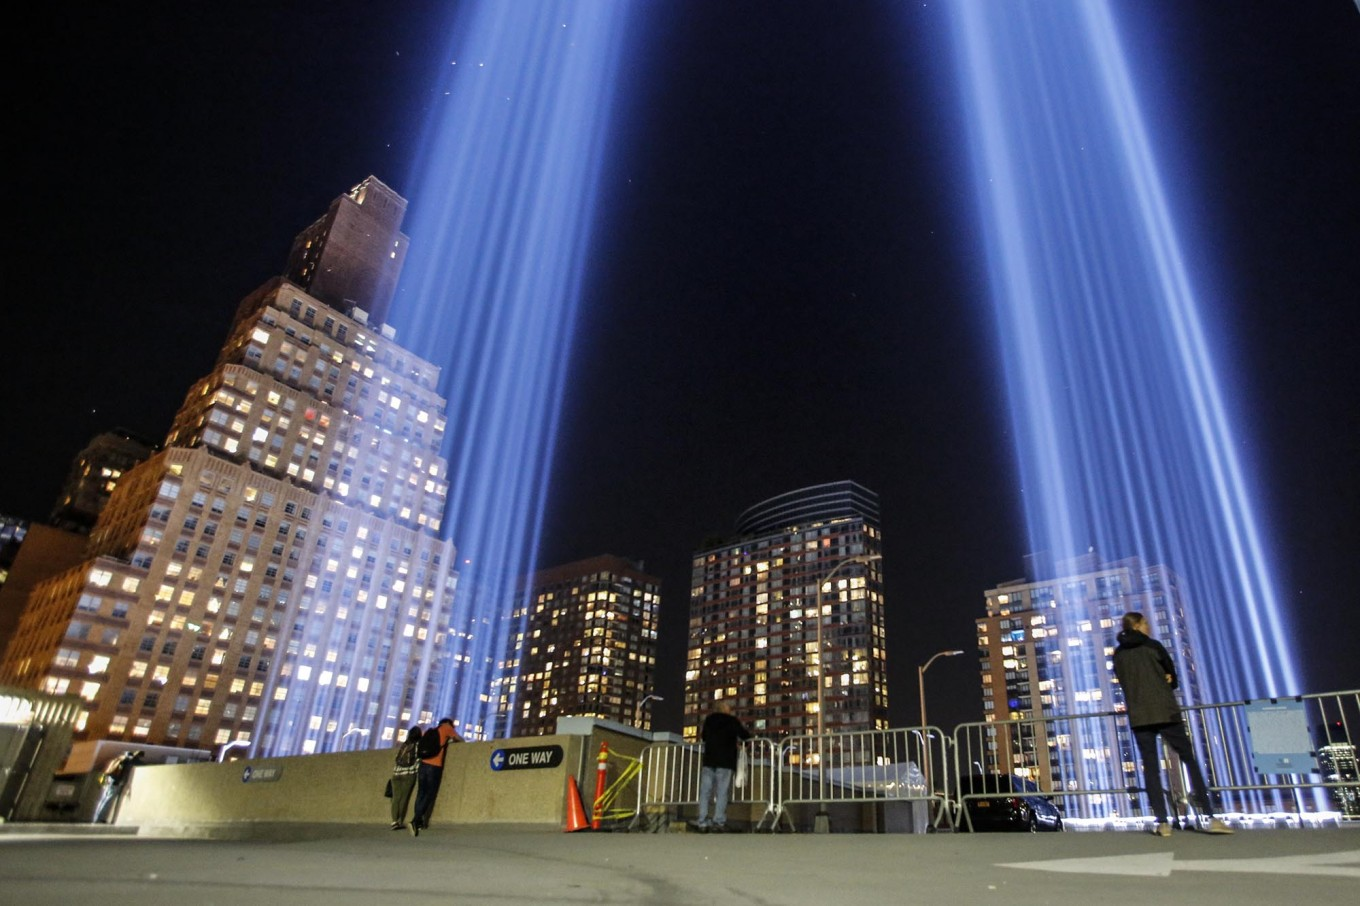 People gather on a rooftop as the 'Tribute in Light' illuminates the night sky, on September 10, 2017 in New York City, on the eve of the anniversary of the September 11, 2001 terror attacks. Commemorations are being held on the 16th anniversary of the 9/11 terror attacks, with President Donald Trump expected to speak at a ceremony for the 184 people killed at the Pentagon in Washington, DC. AFP/ Kena Betancur